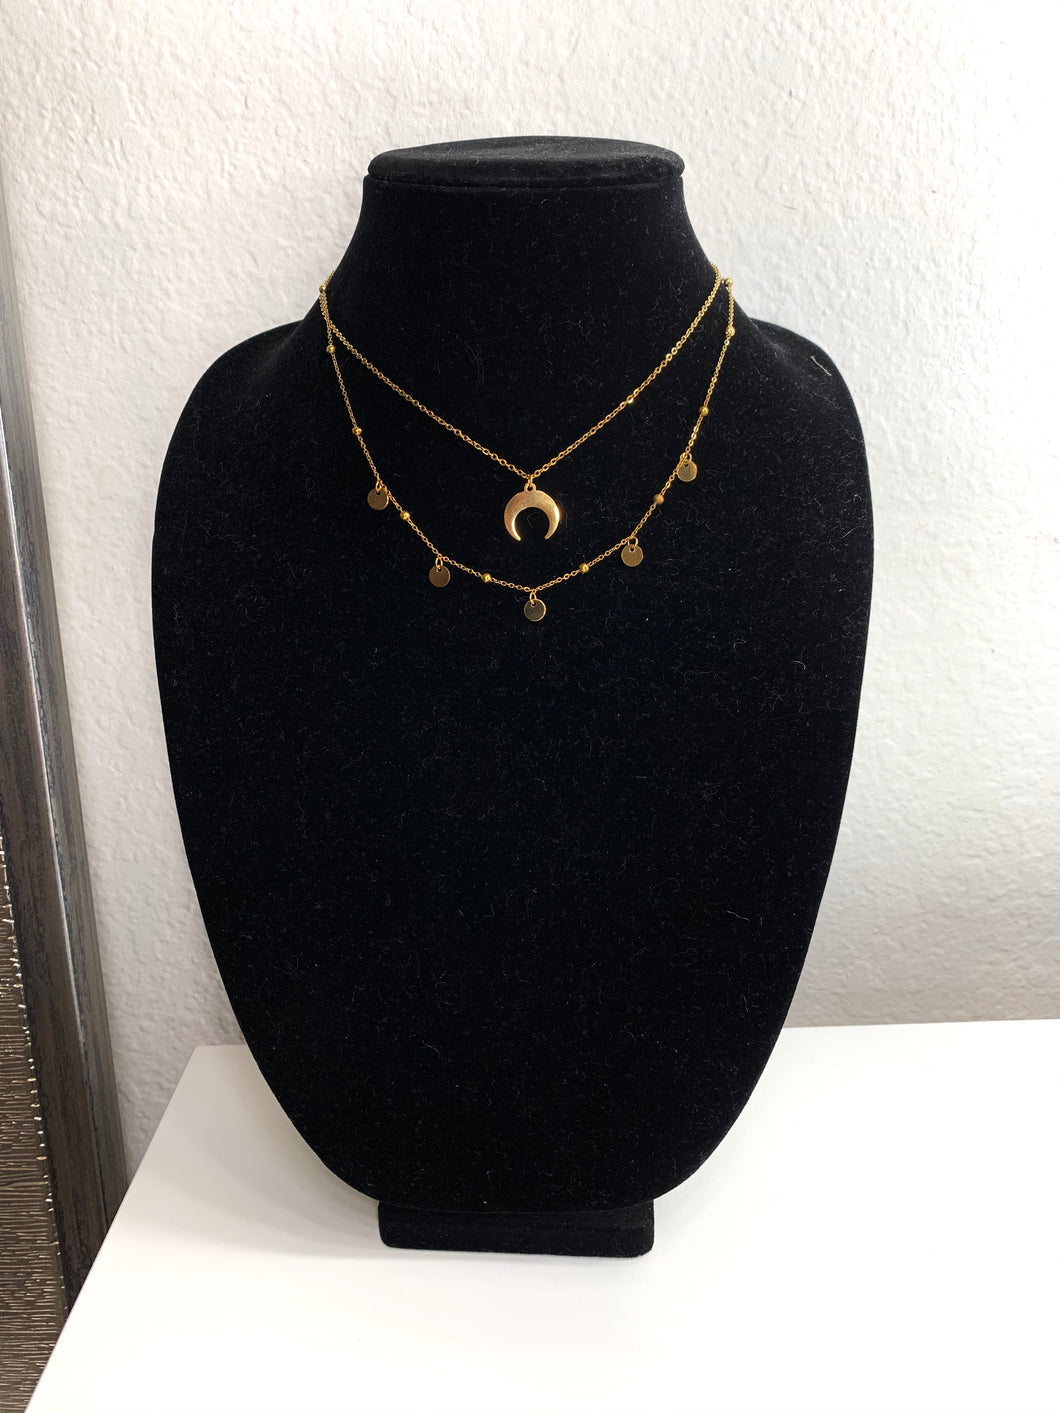 Necklace - Moon and Circles